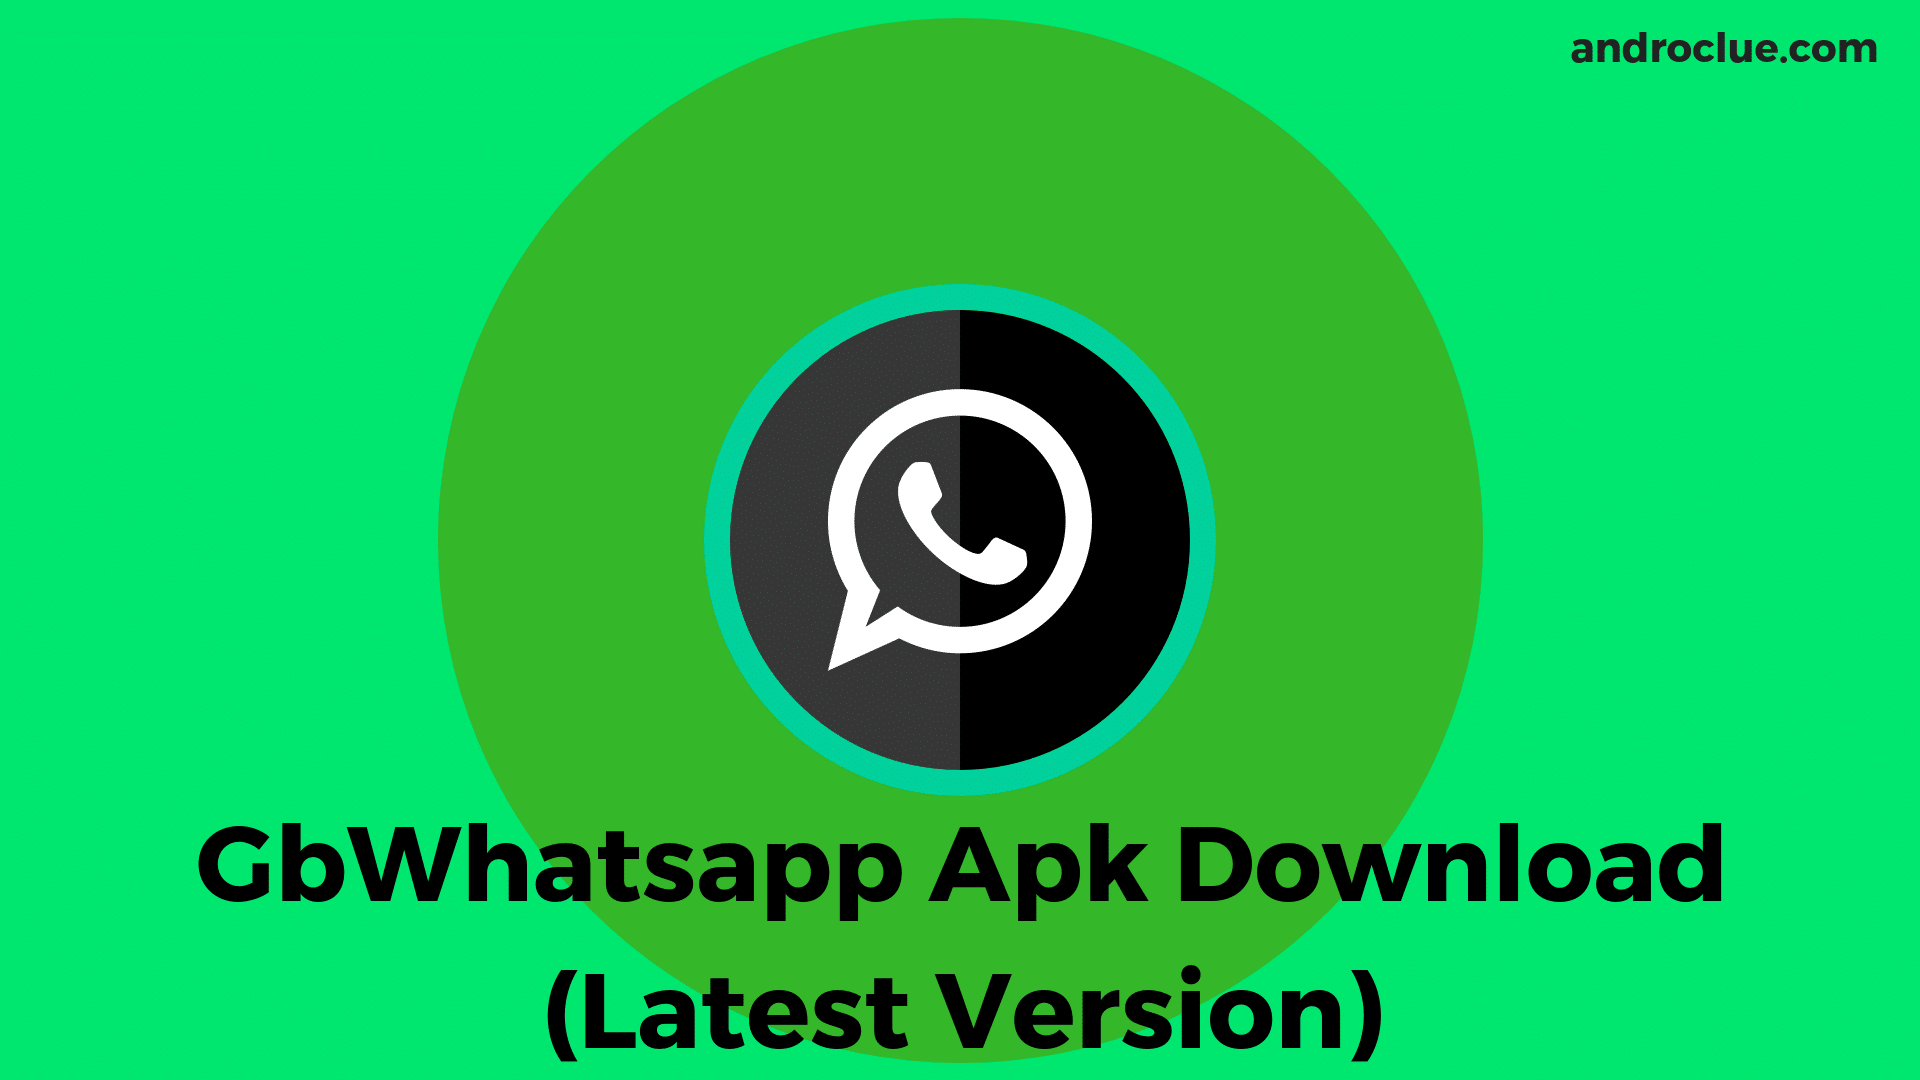 gb whatsapp 2019 download latest version